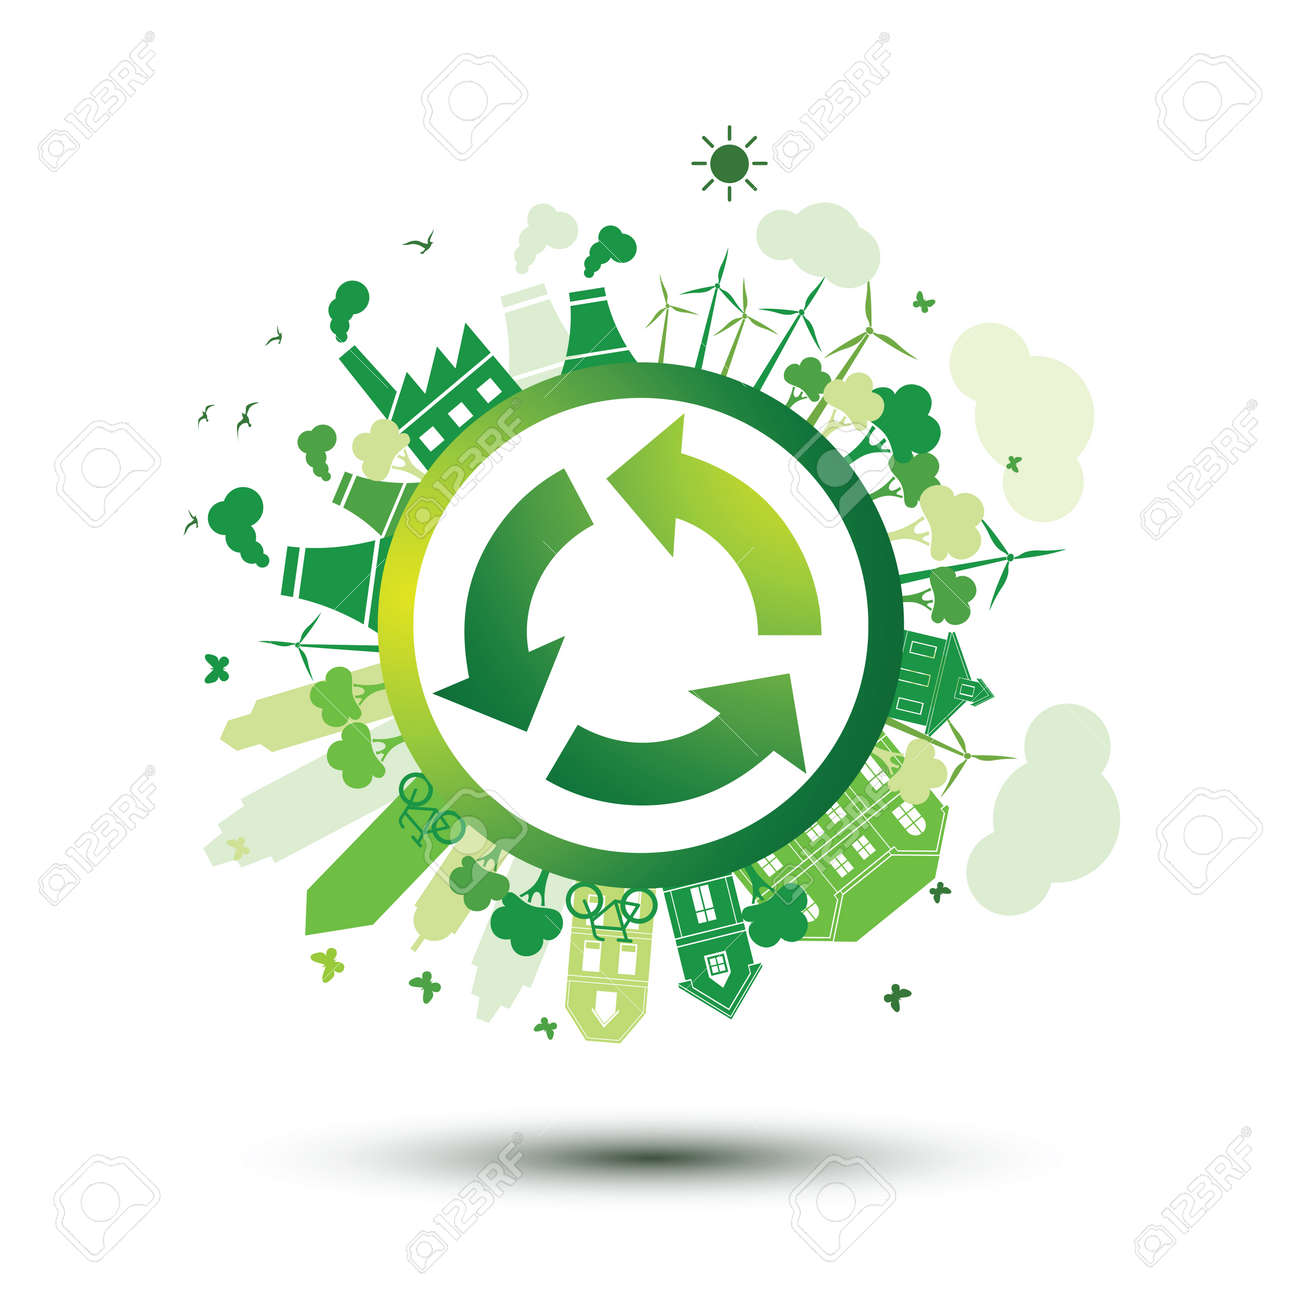 Green city sustainable nature concept with recycle logo,vector illustration Stock Vector - 74911084